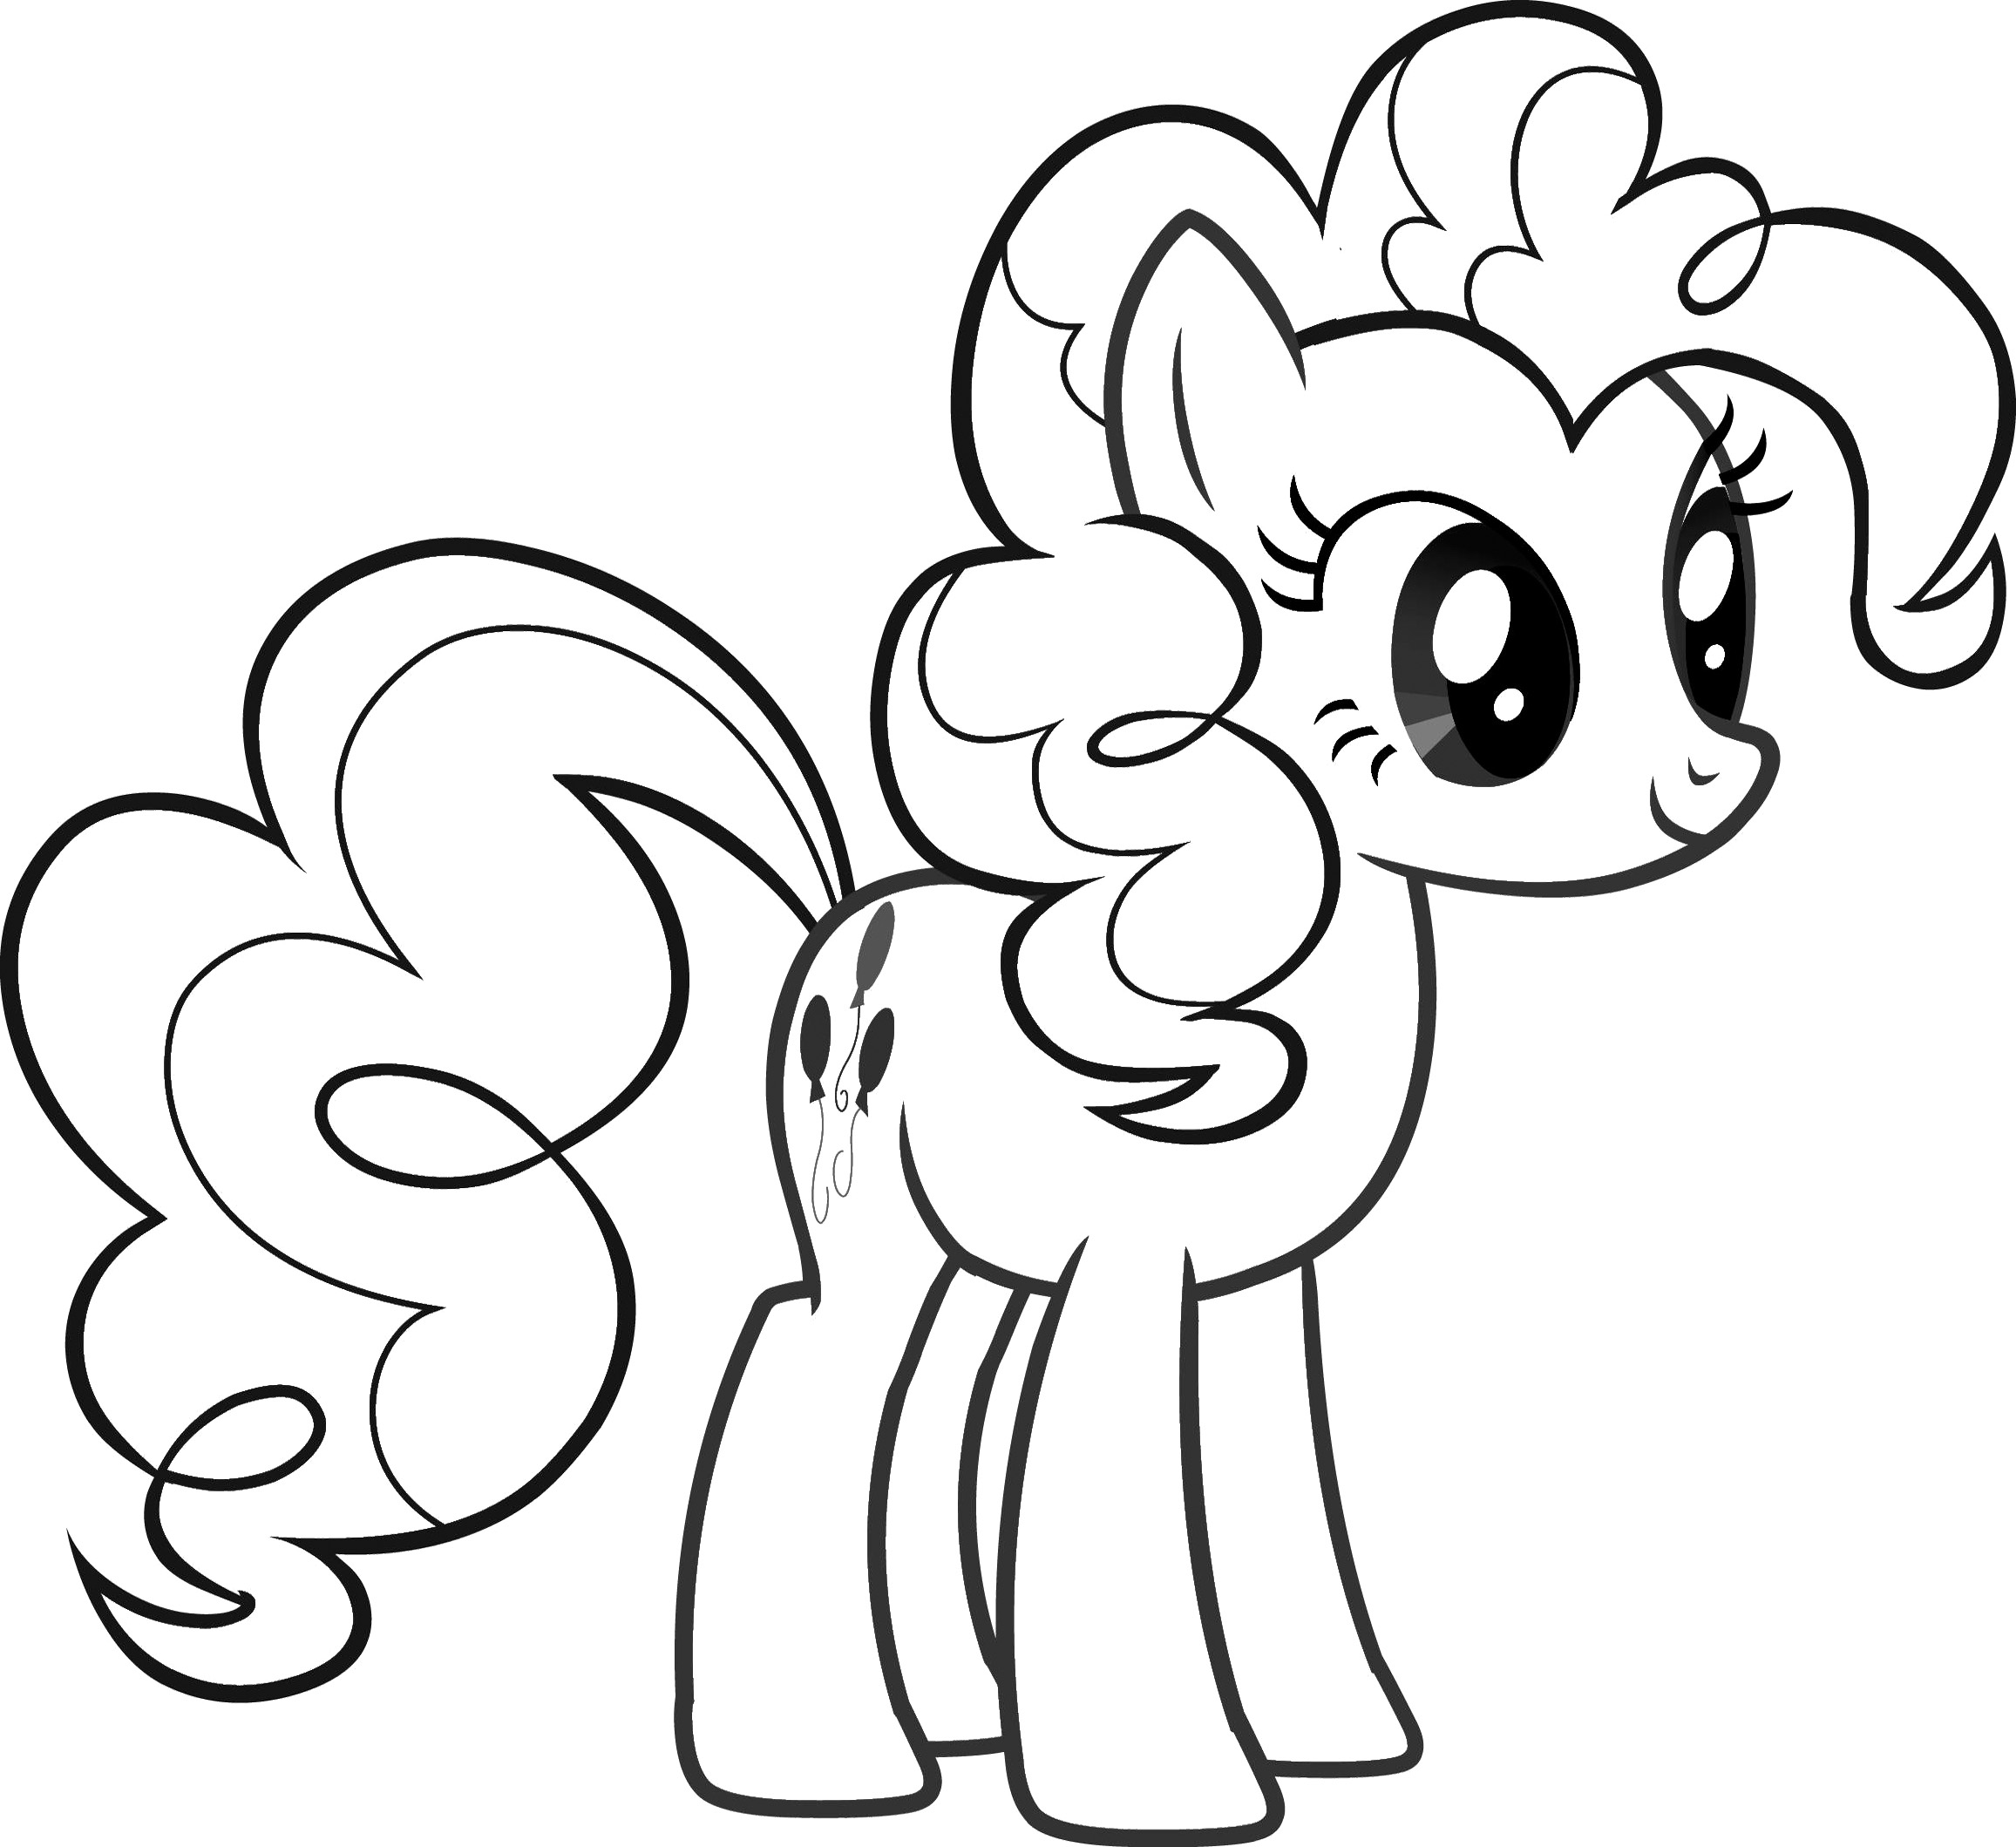 my little pony drawing at getdrawings com free for personal use my